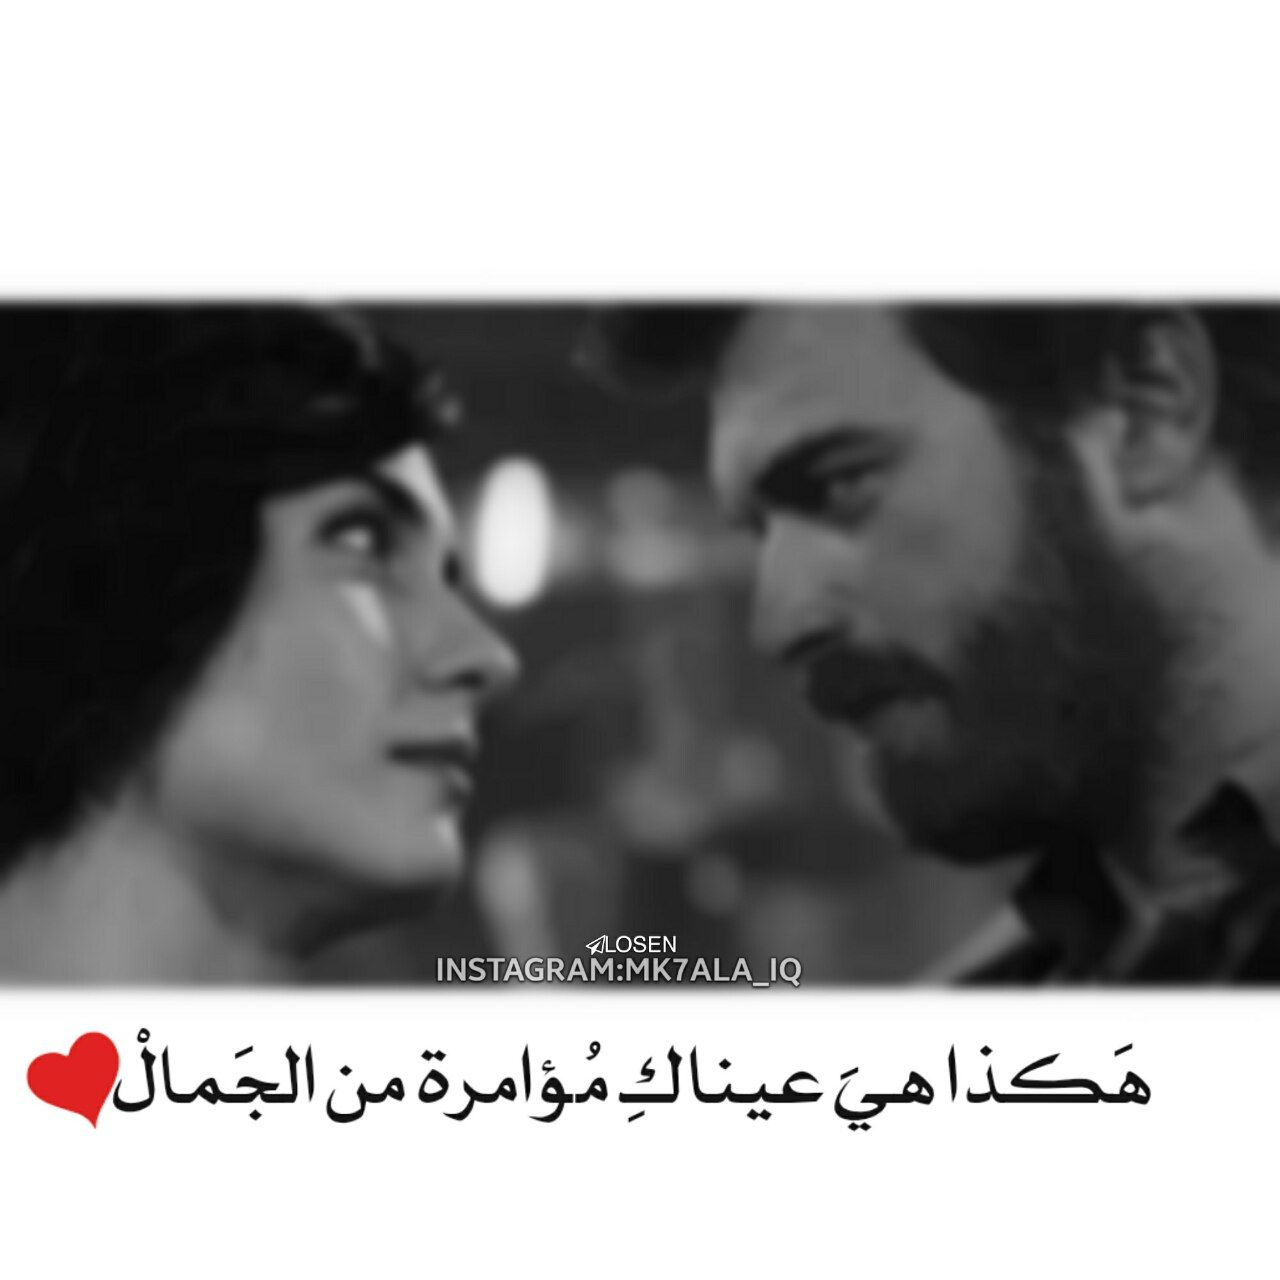 Pin By Rody On رمزيات Amazing Quotes Love Words Words